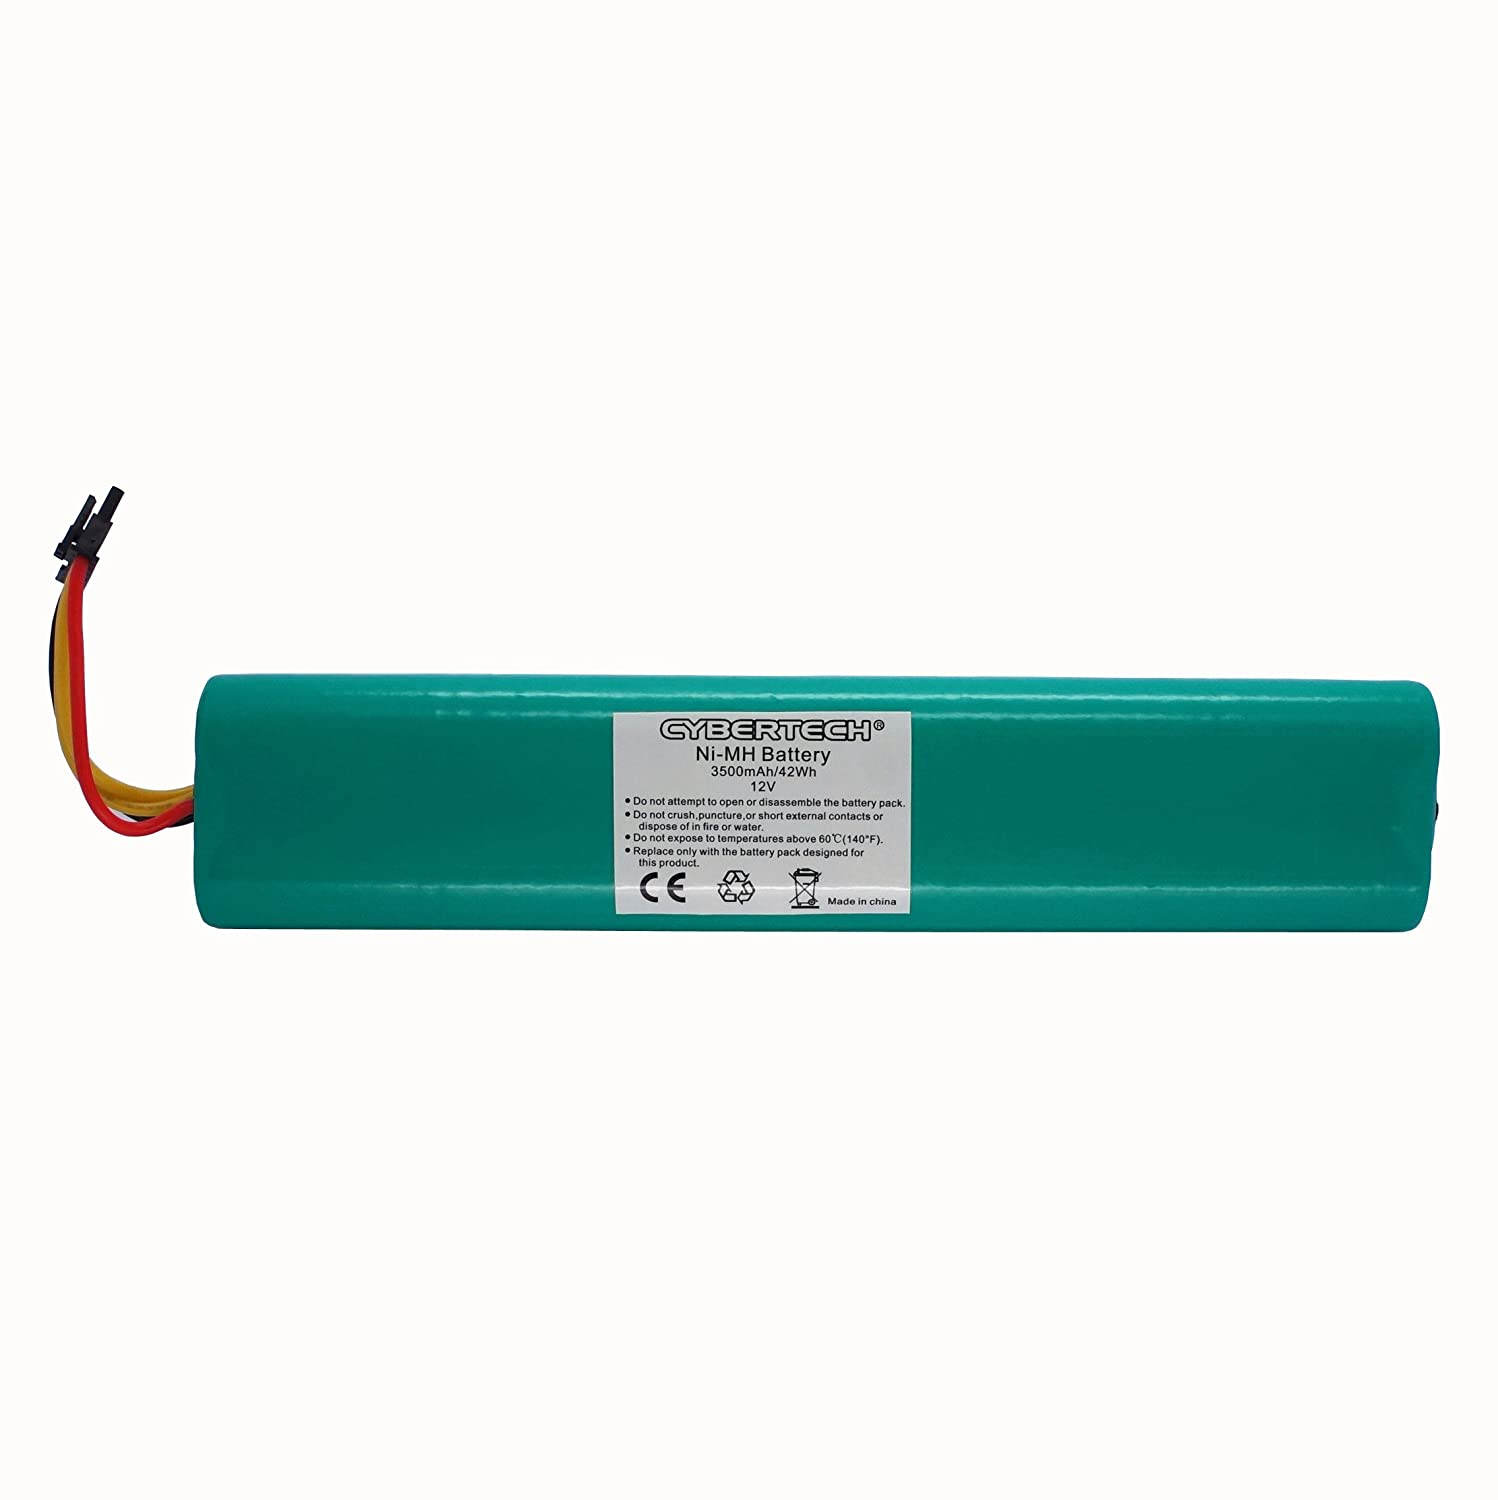 CyberTech NiMh Battery Pack for Botvac Series and Botvac D Series Robots bat-botvoc-NiMh